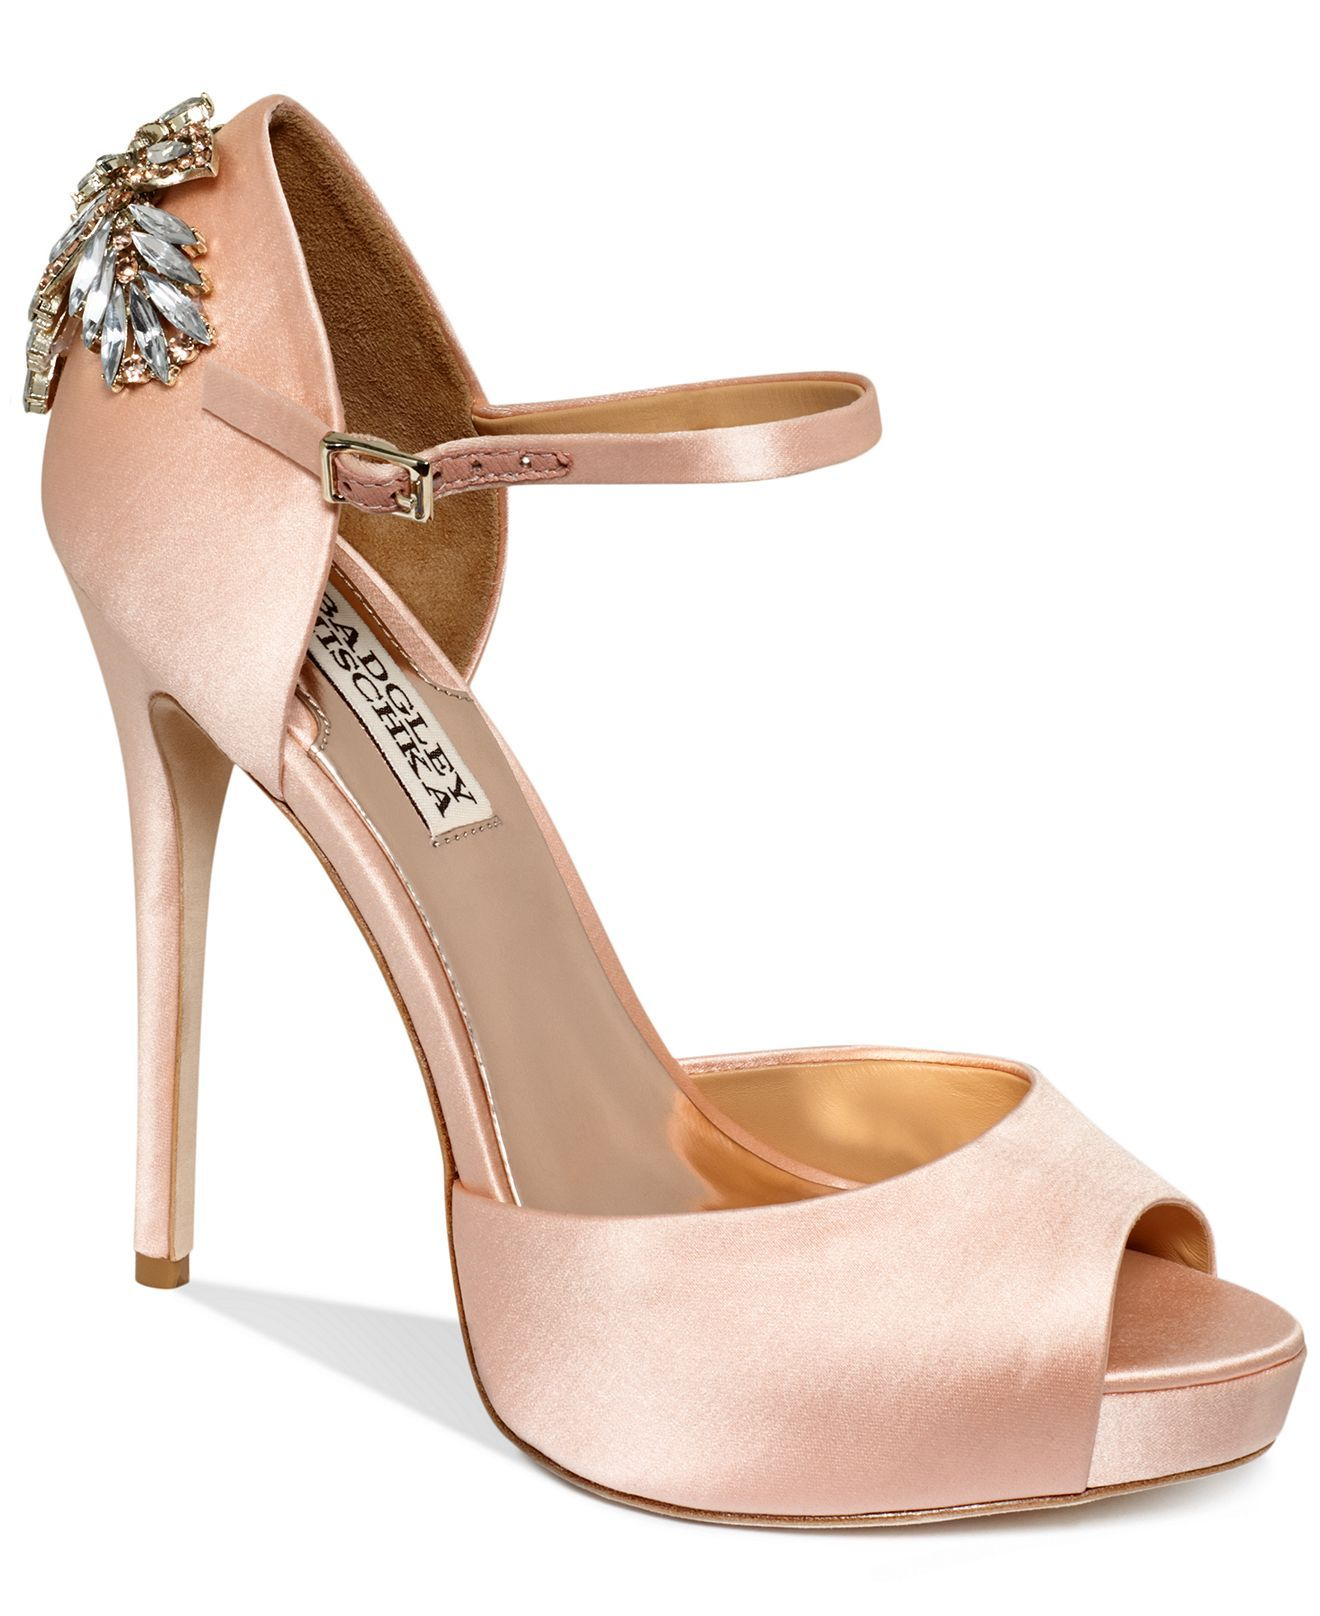 0129340e9f4e Badgley Mischka Shoes